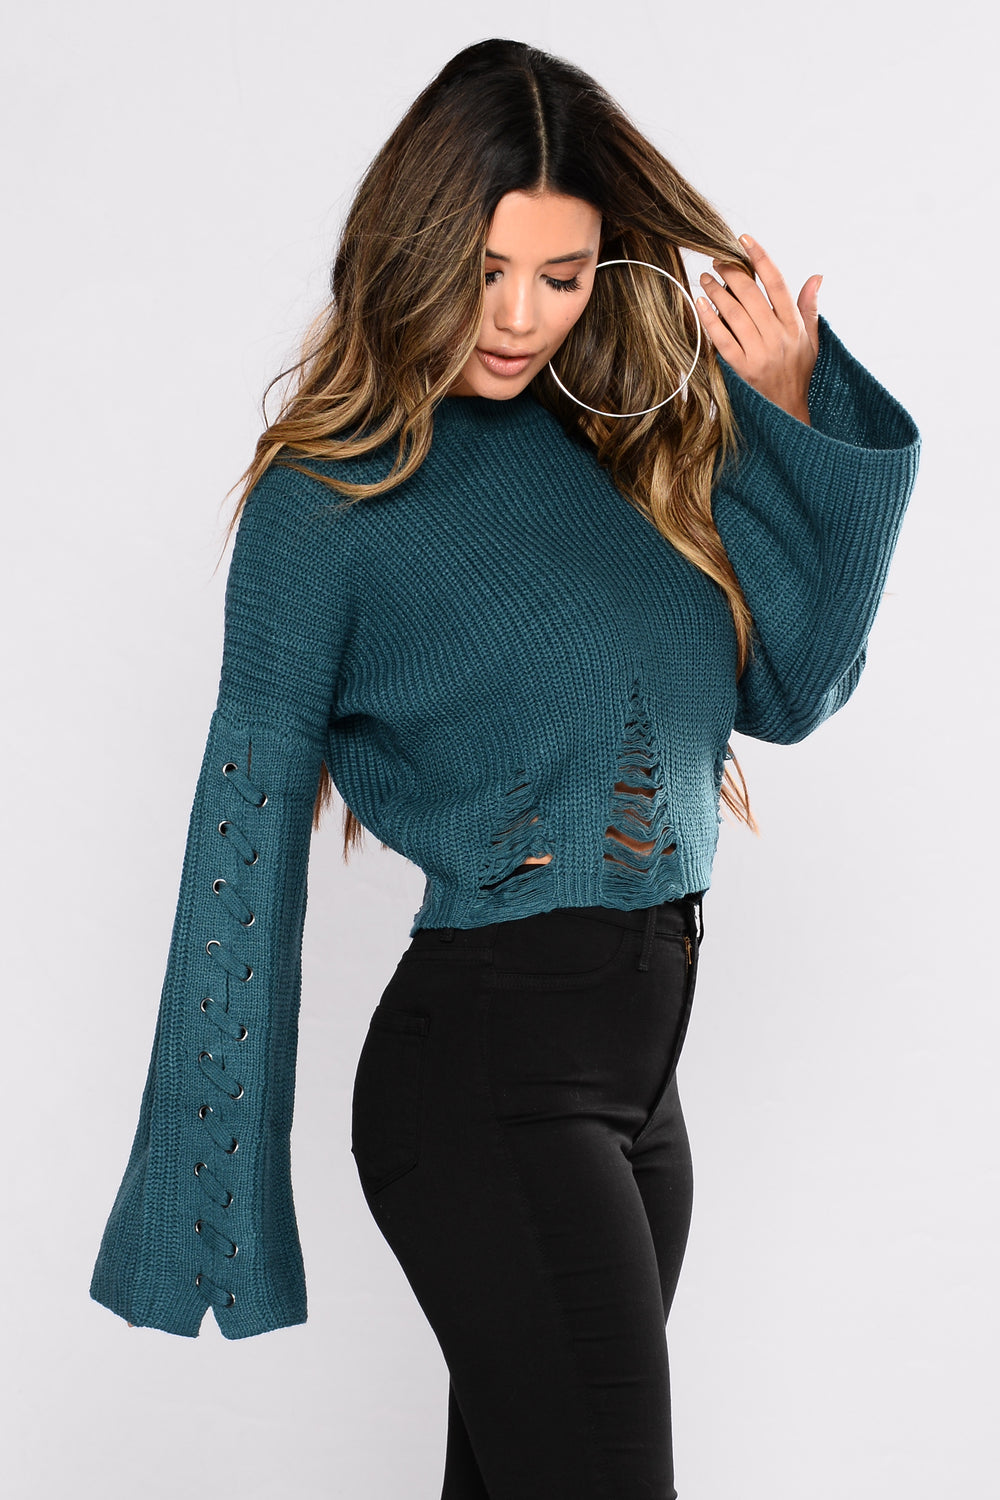 Always Somebody To Love Sweater - Teal